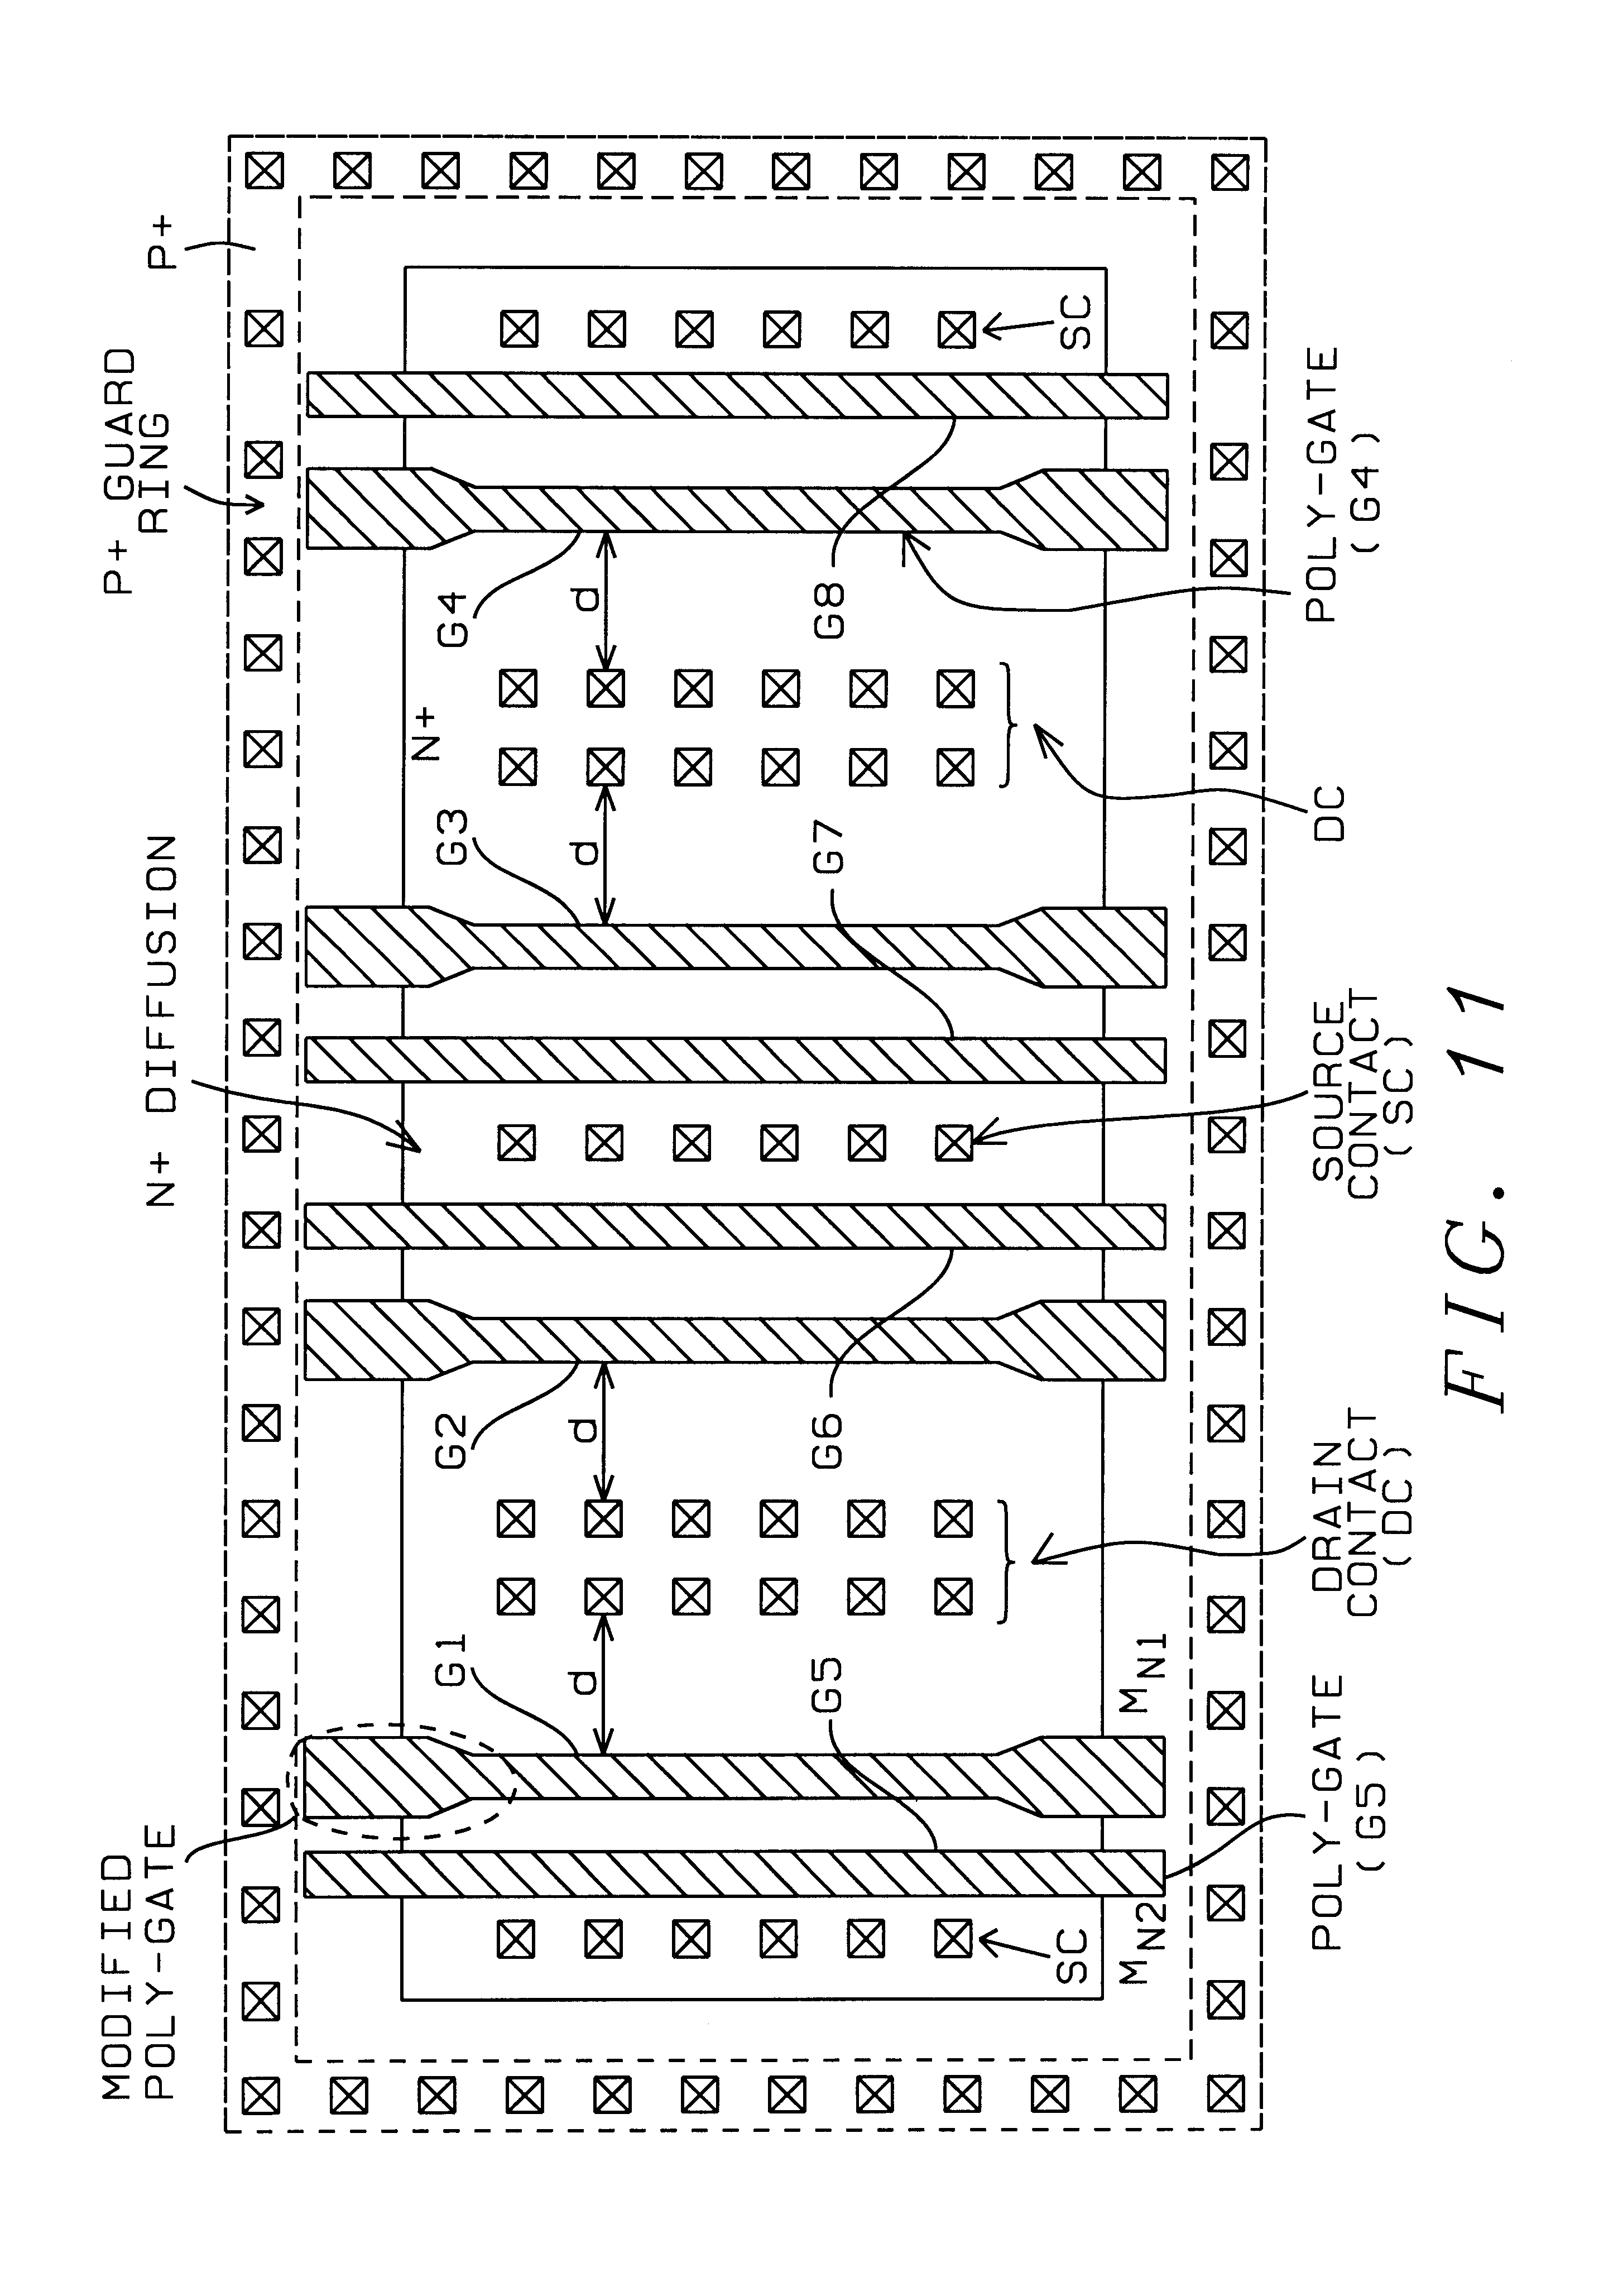 Patent Us6750517 Device Layout To Improve Esd Robustness In Deep Circuit Which Demonstrates The Use Of Transistors When A Finger Is Drawing